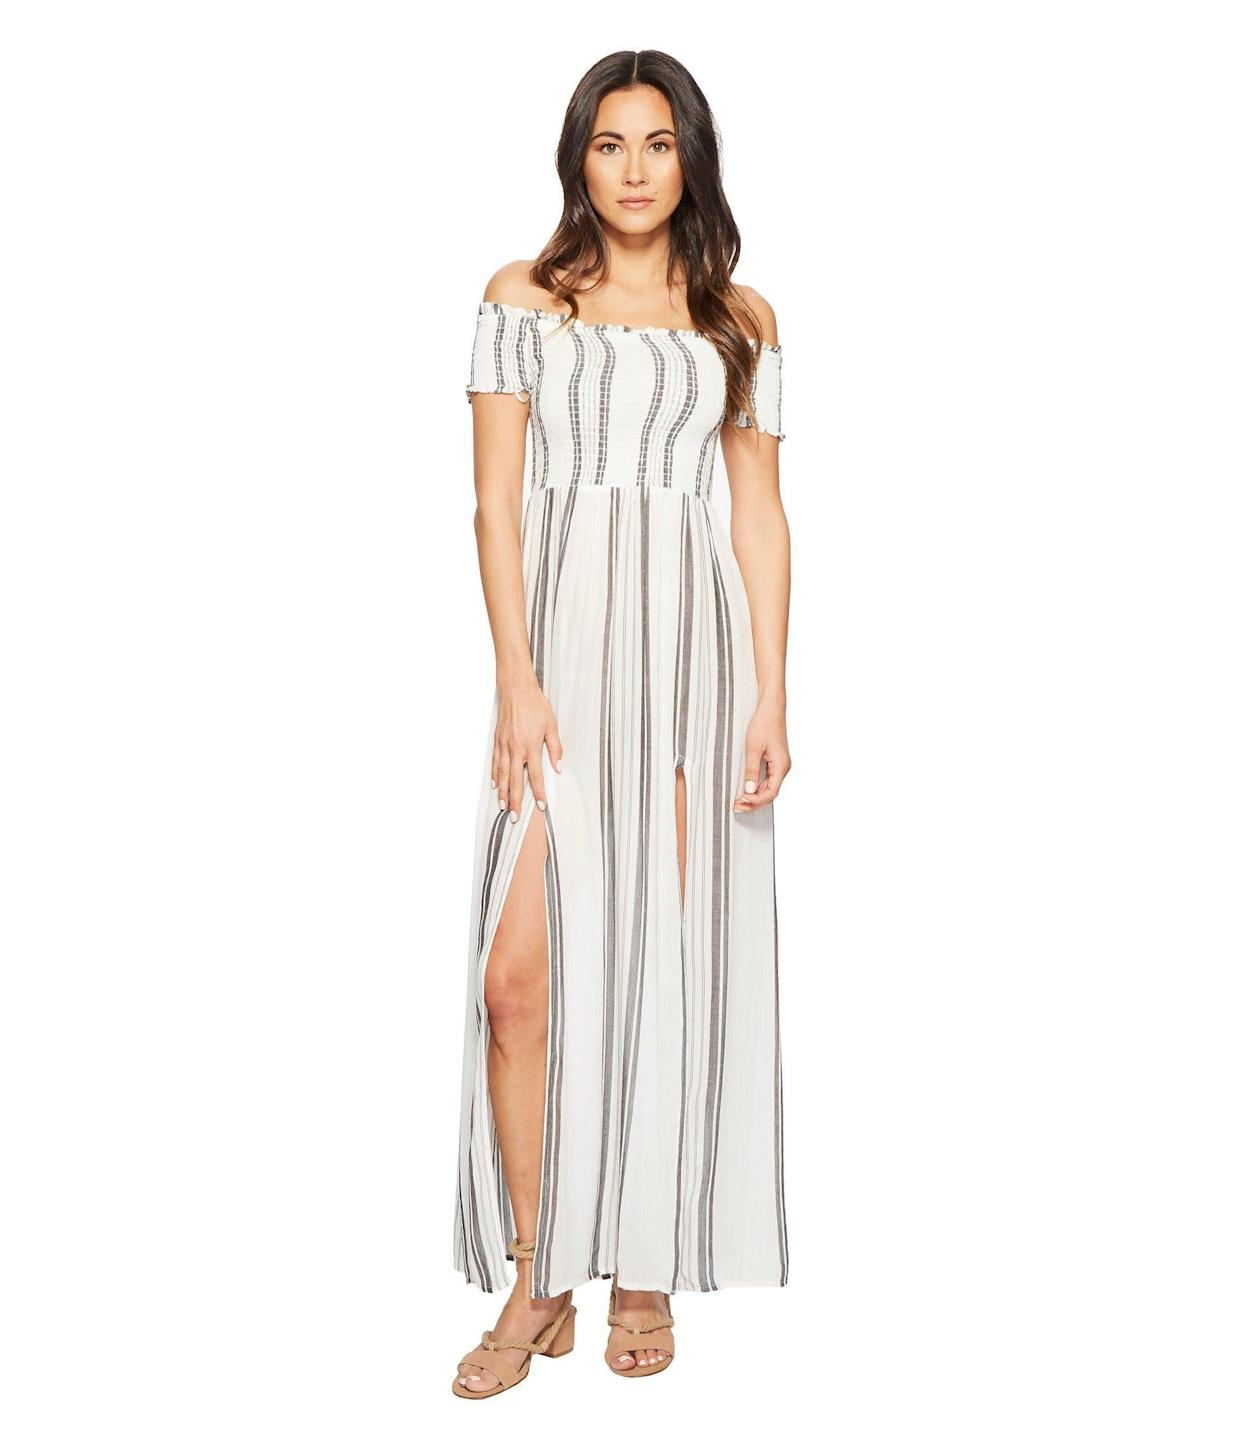 "<strong><a href=""https://www.zappos.com/p/rip-curl-soulmate-maxi-dress-white/product/9055255/color/14"" rel=""nofollow noopener"" target=""_blank"" data-ylk=""slk:Rip Curl Soulmate maxi dress"" class=""link rapid-noclick-resp"">Rip Curl Soulmate maxi dress</a>, $49.99</strong>"